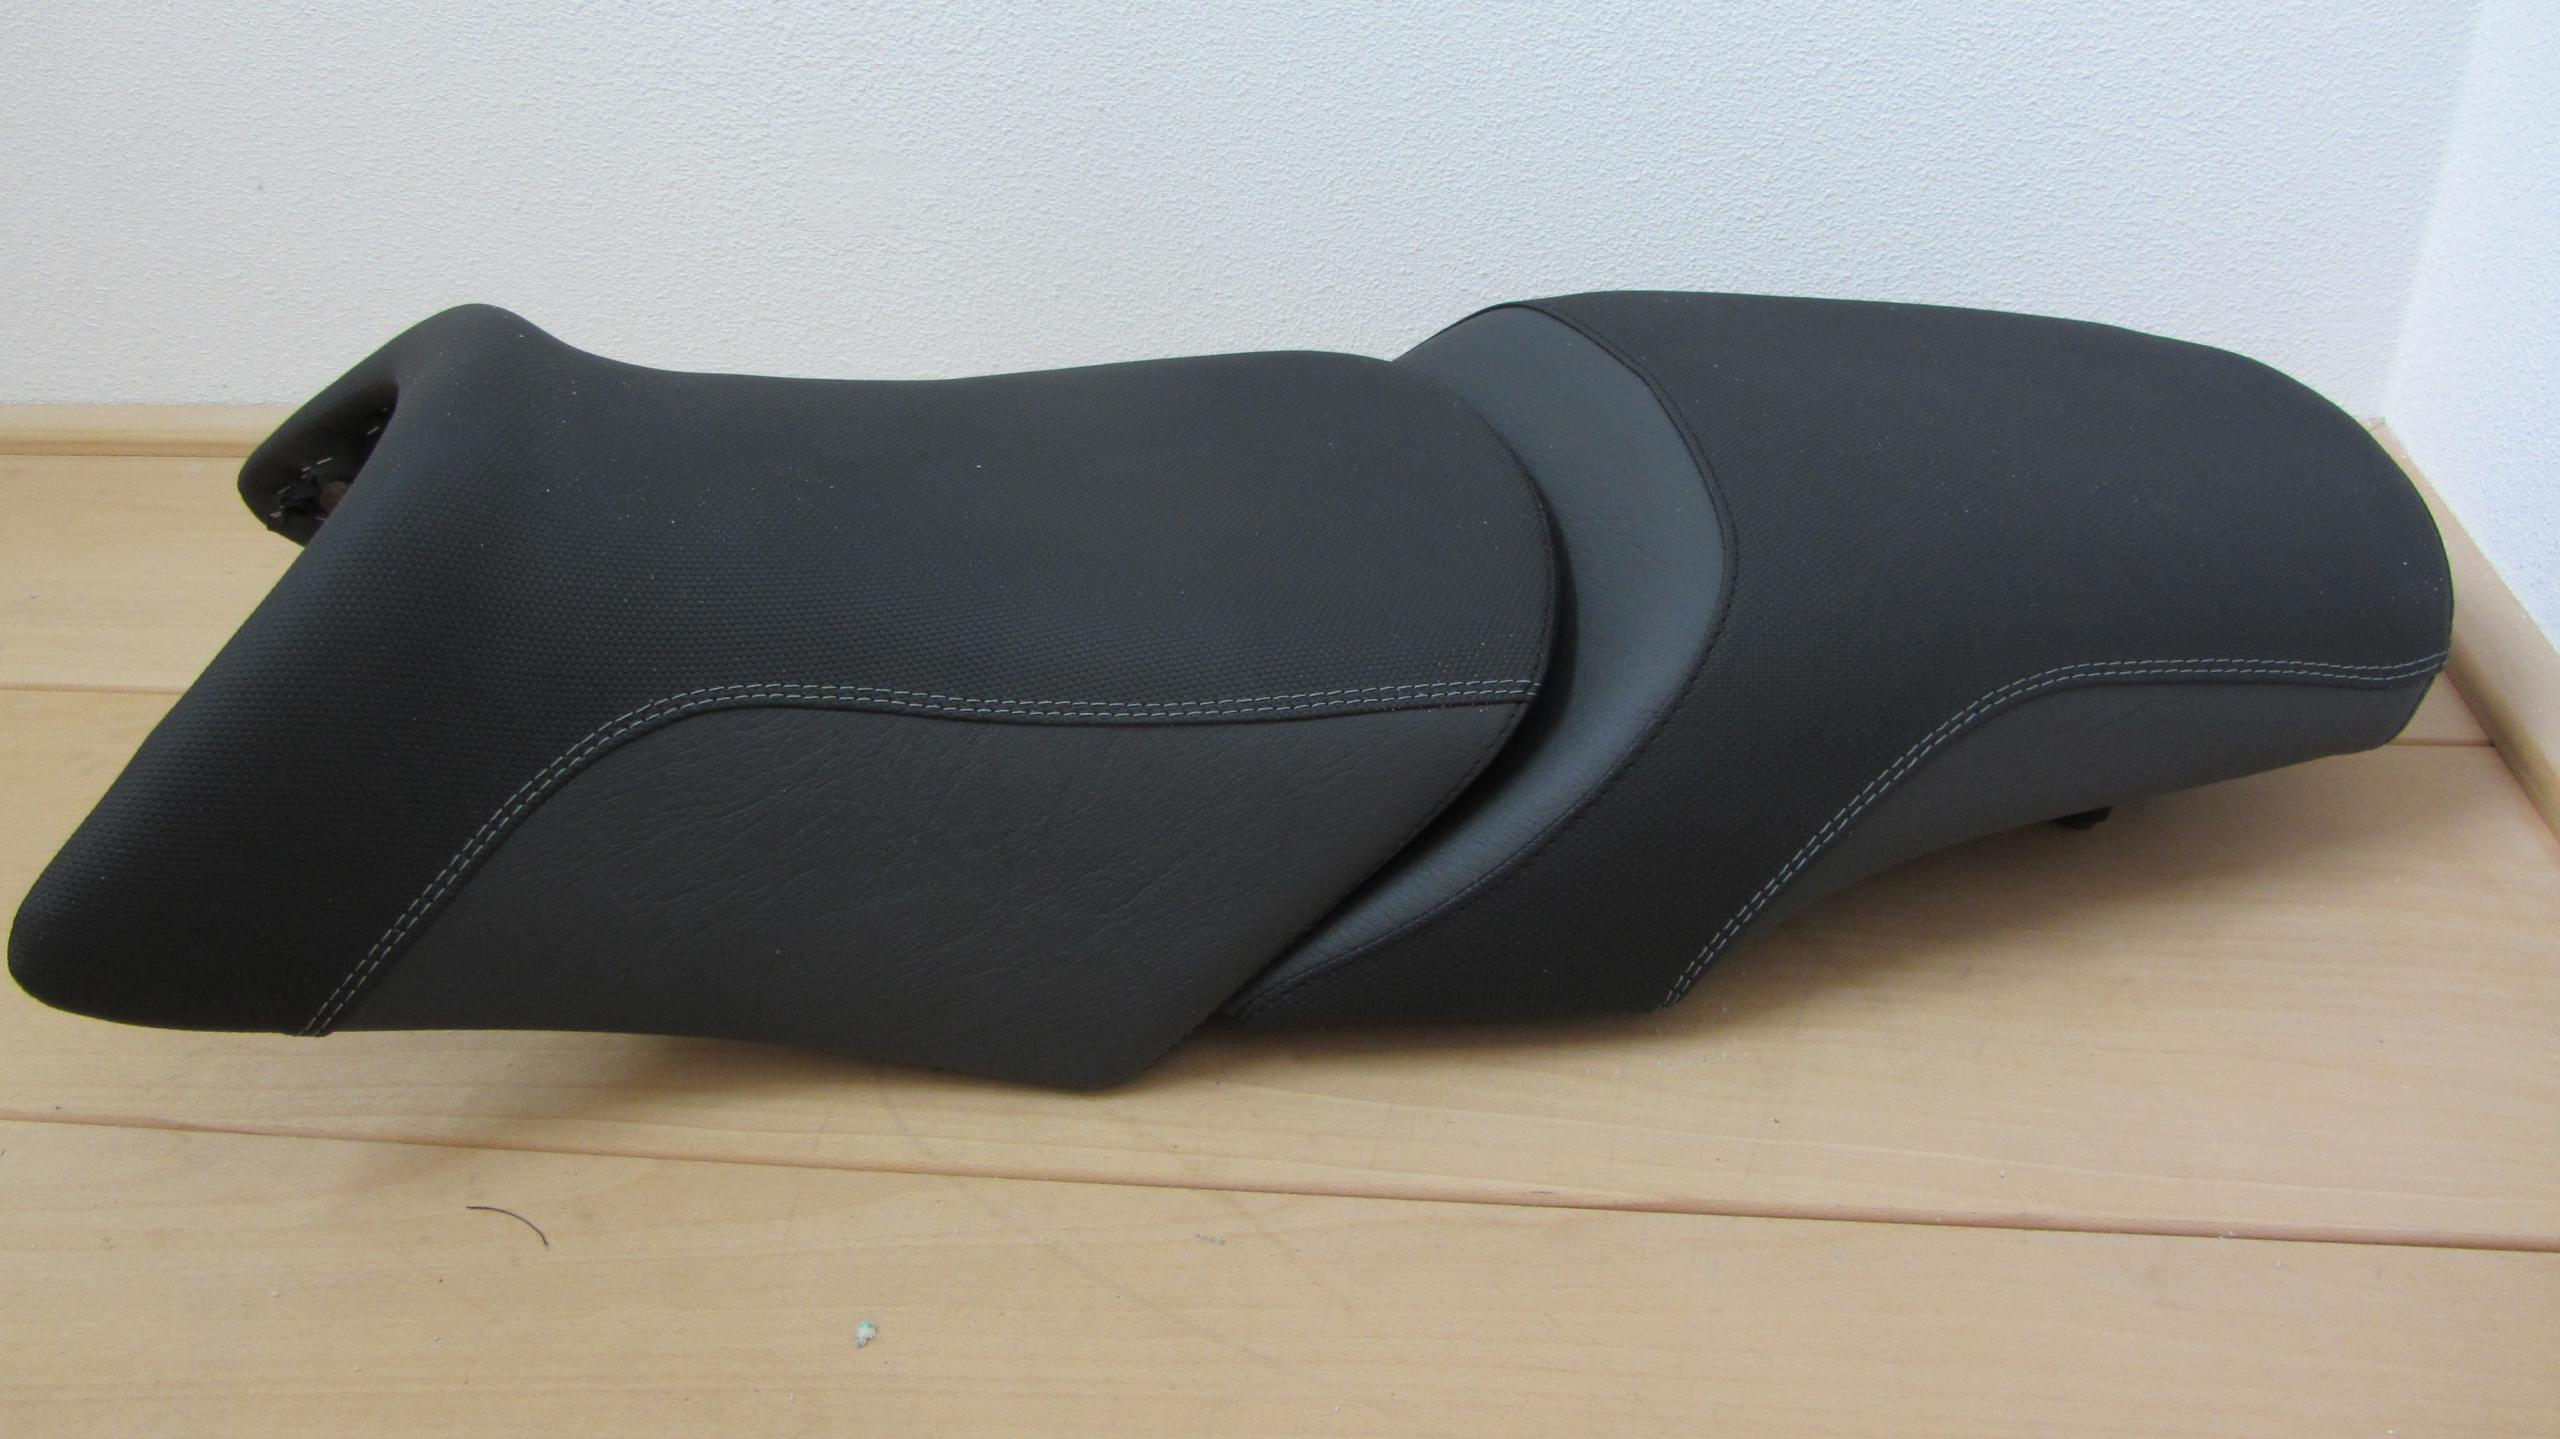 Comfort buddyseat bmw r1200rt